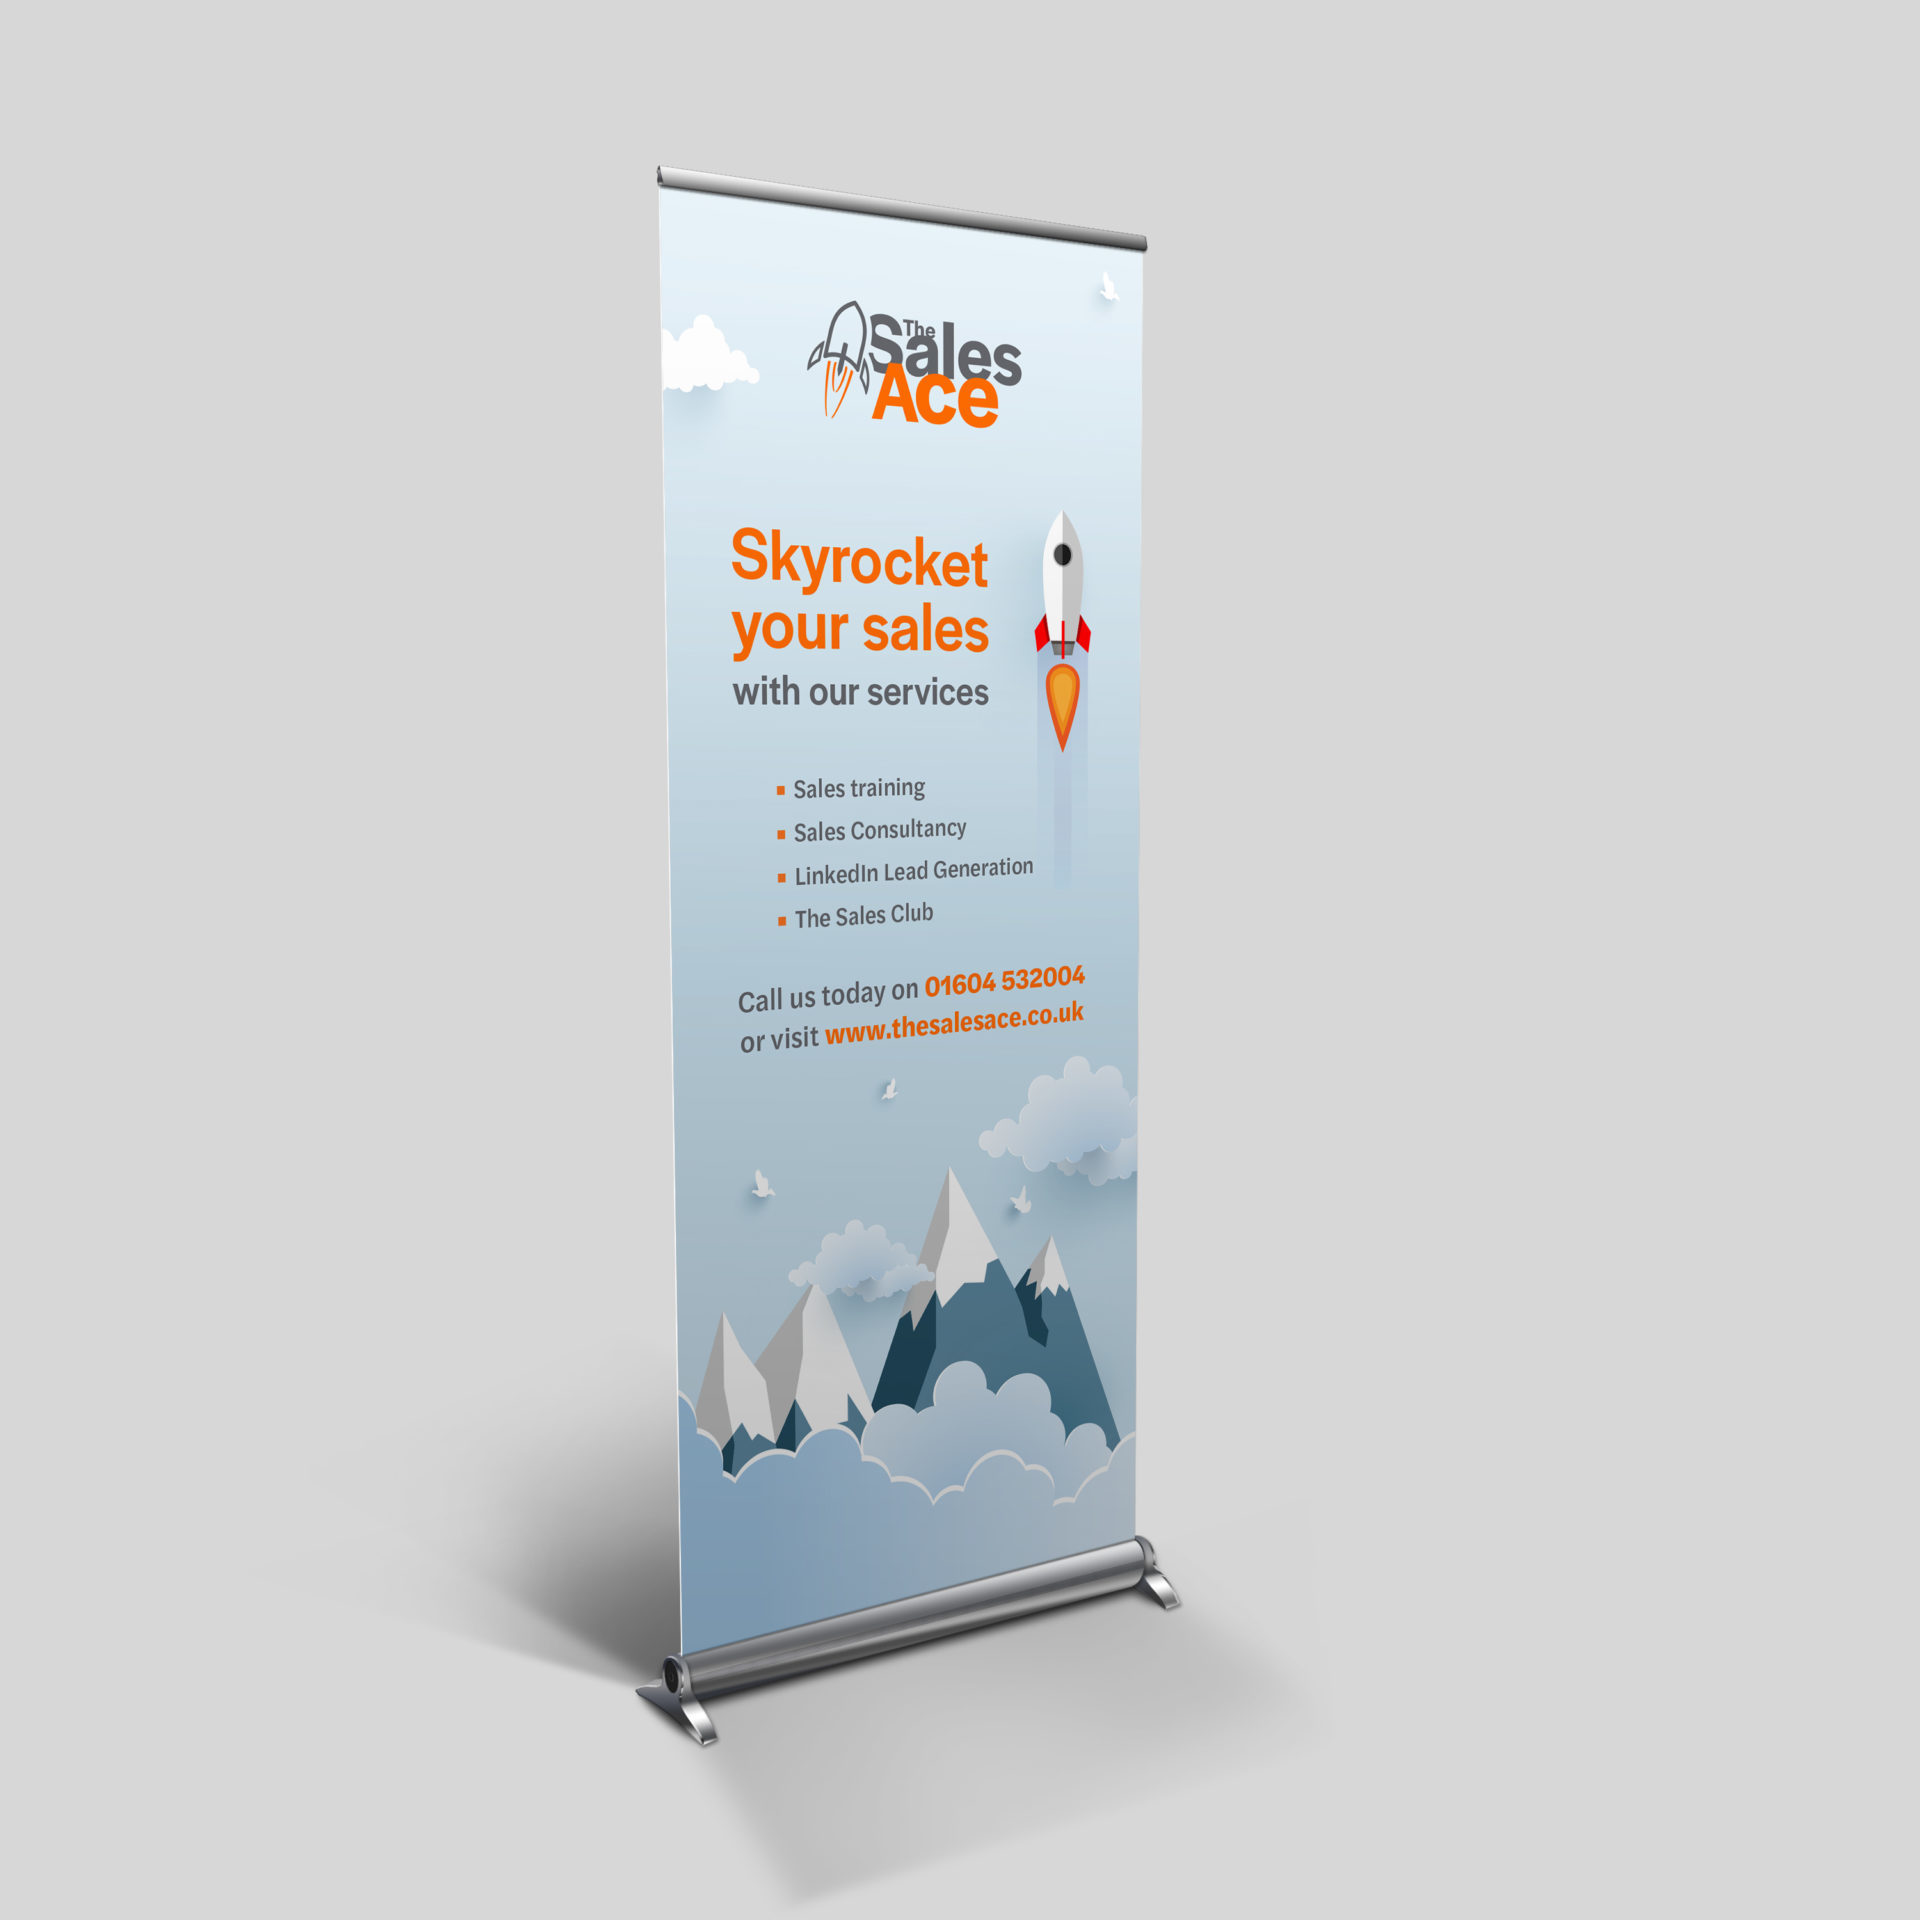 Roller Banner design for The Sales Ace